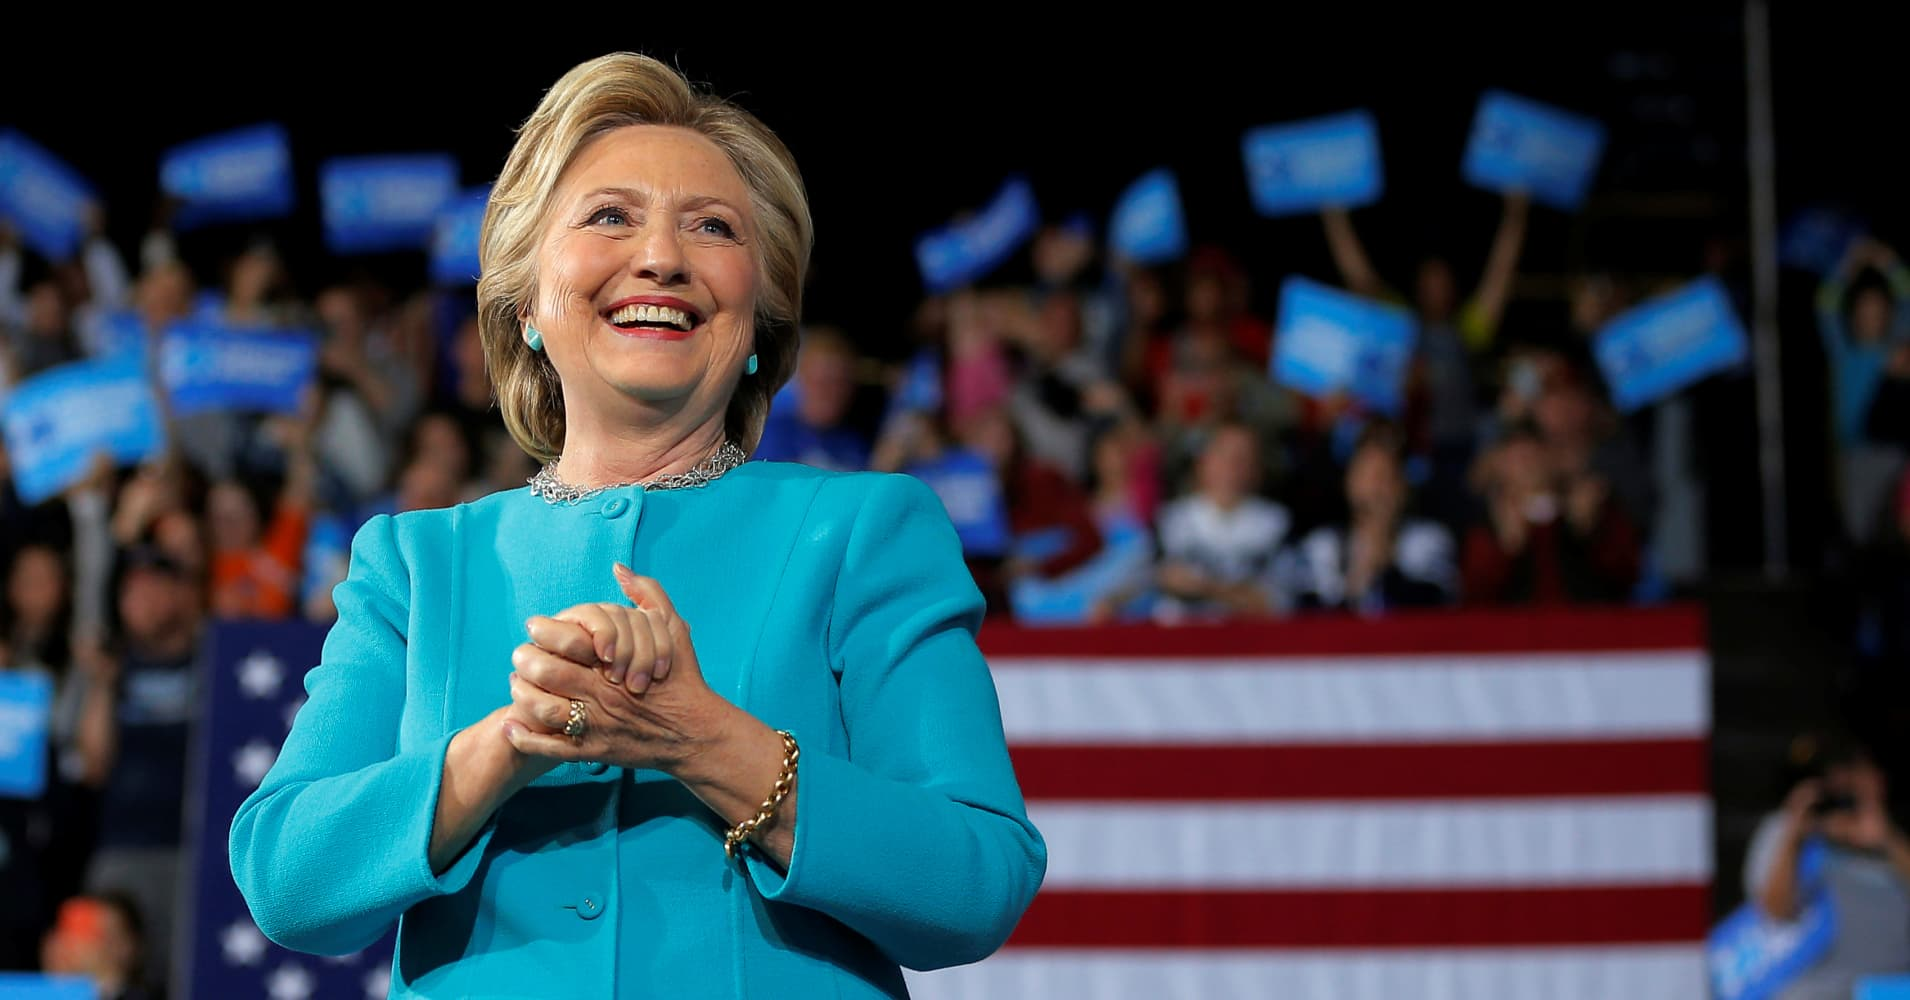 Op-Ed: Why Hillary Clinton may not have a shot at being president in 2020